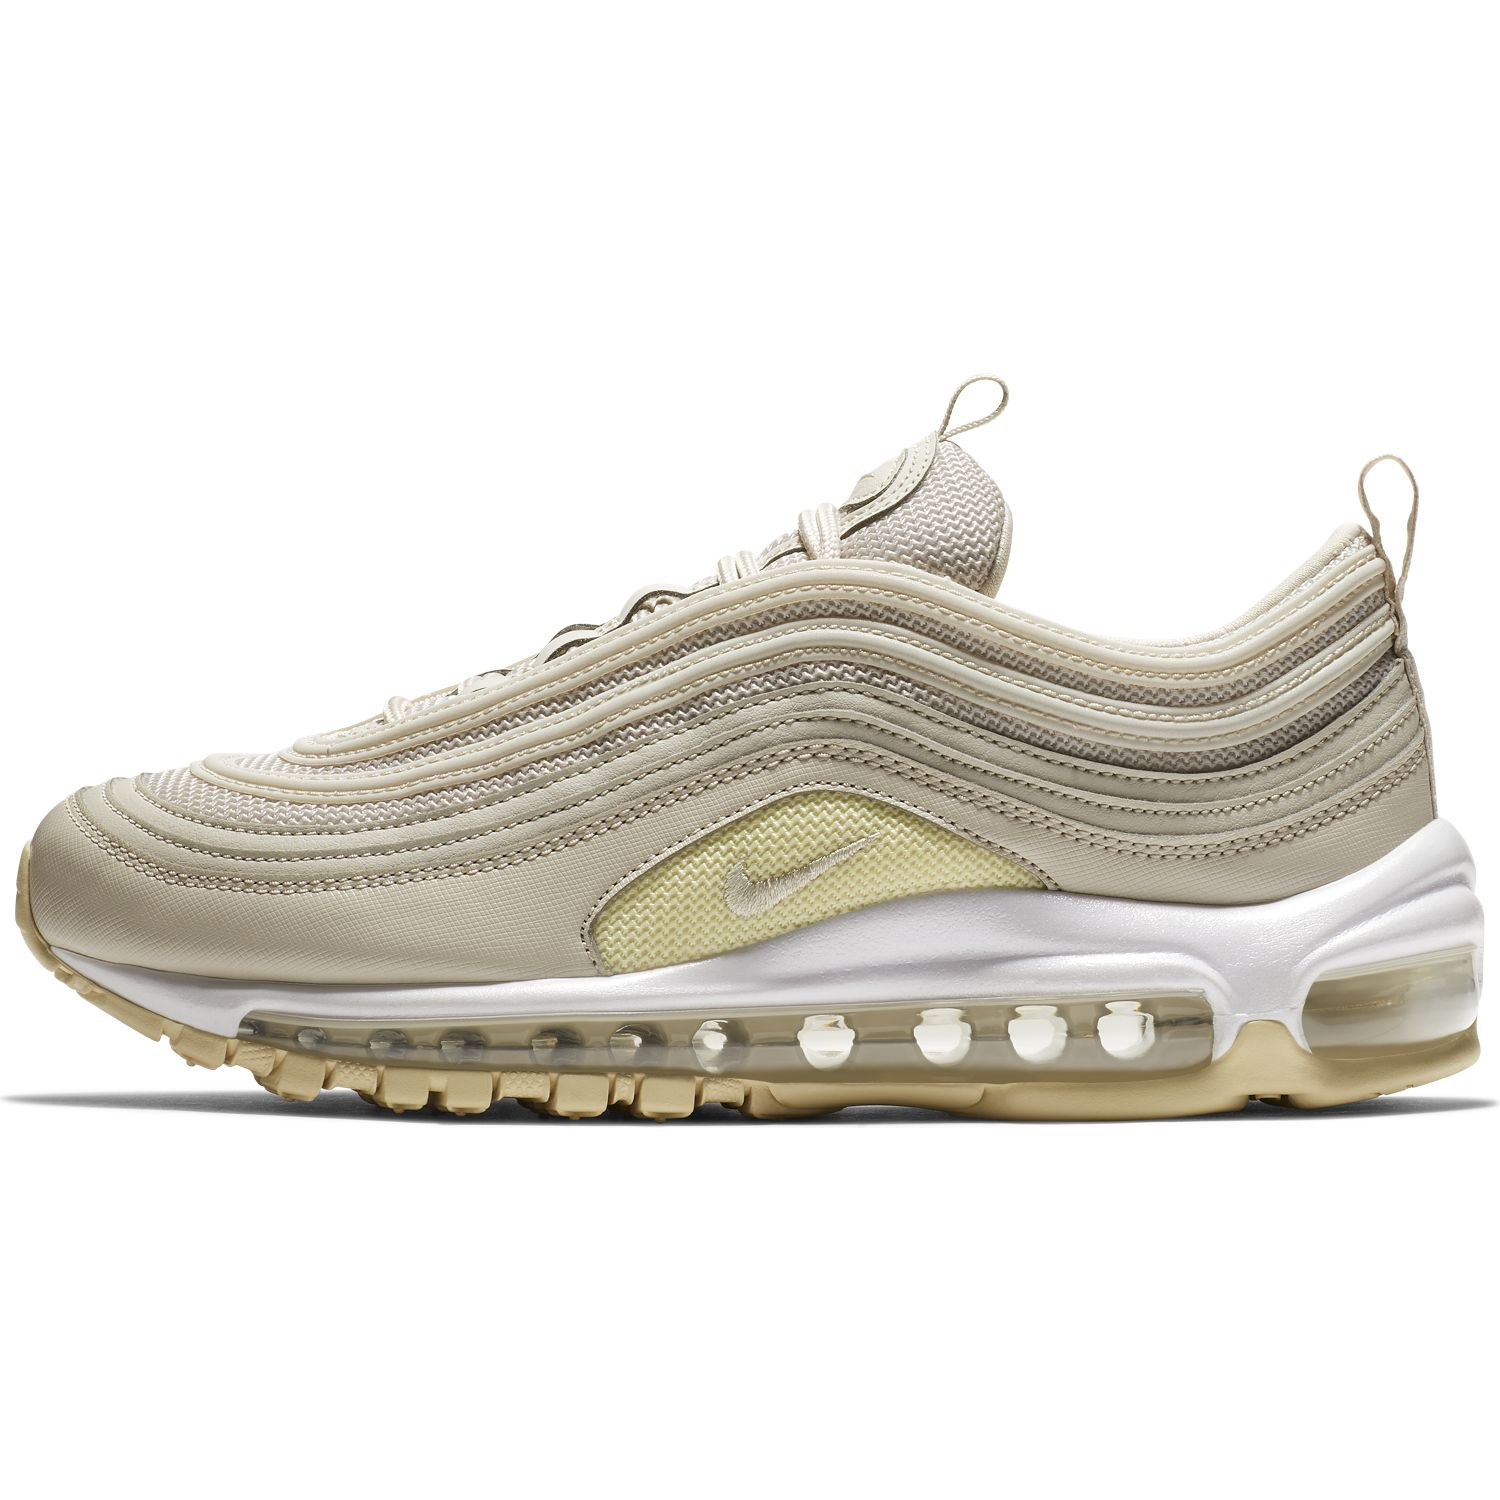 new styles ee9ed 5206e ... BUTY DAMSKIE LIFESTYLE NIKE AIR MAX 97 BEŻOWE 921733-013 ...